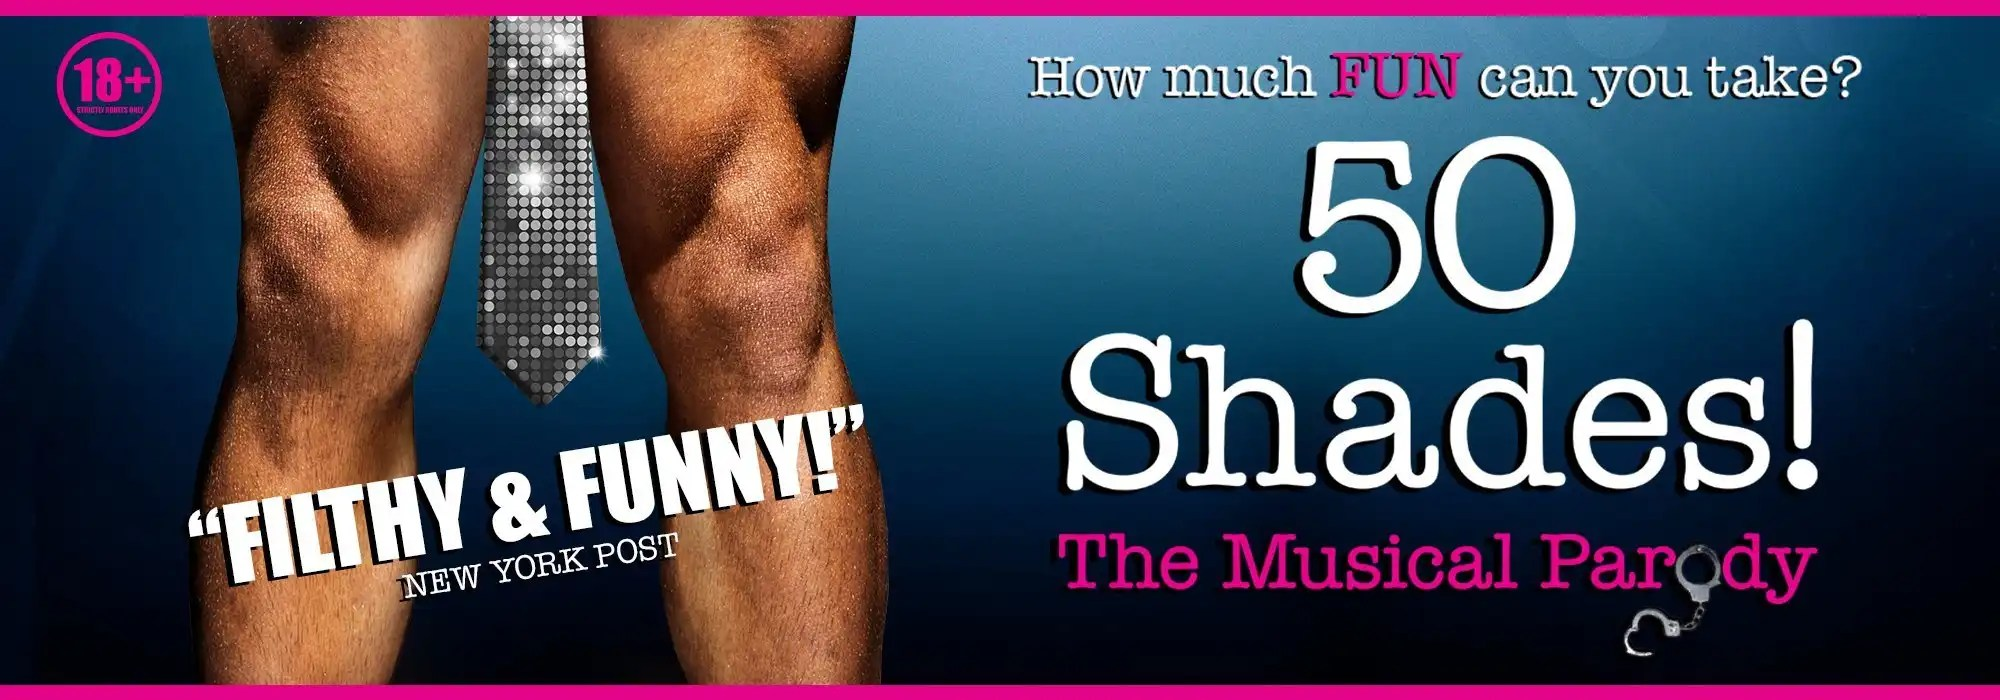 50 Shades | The Musical Parody